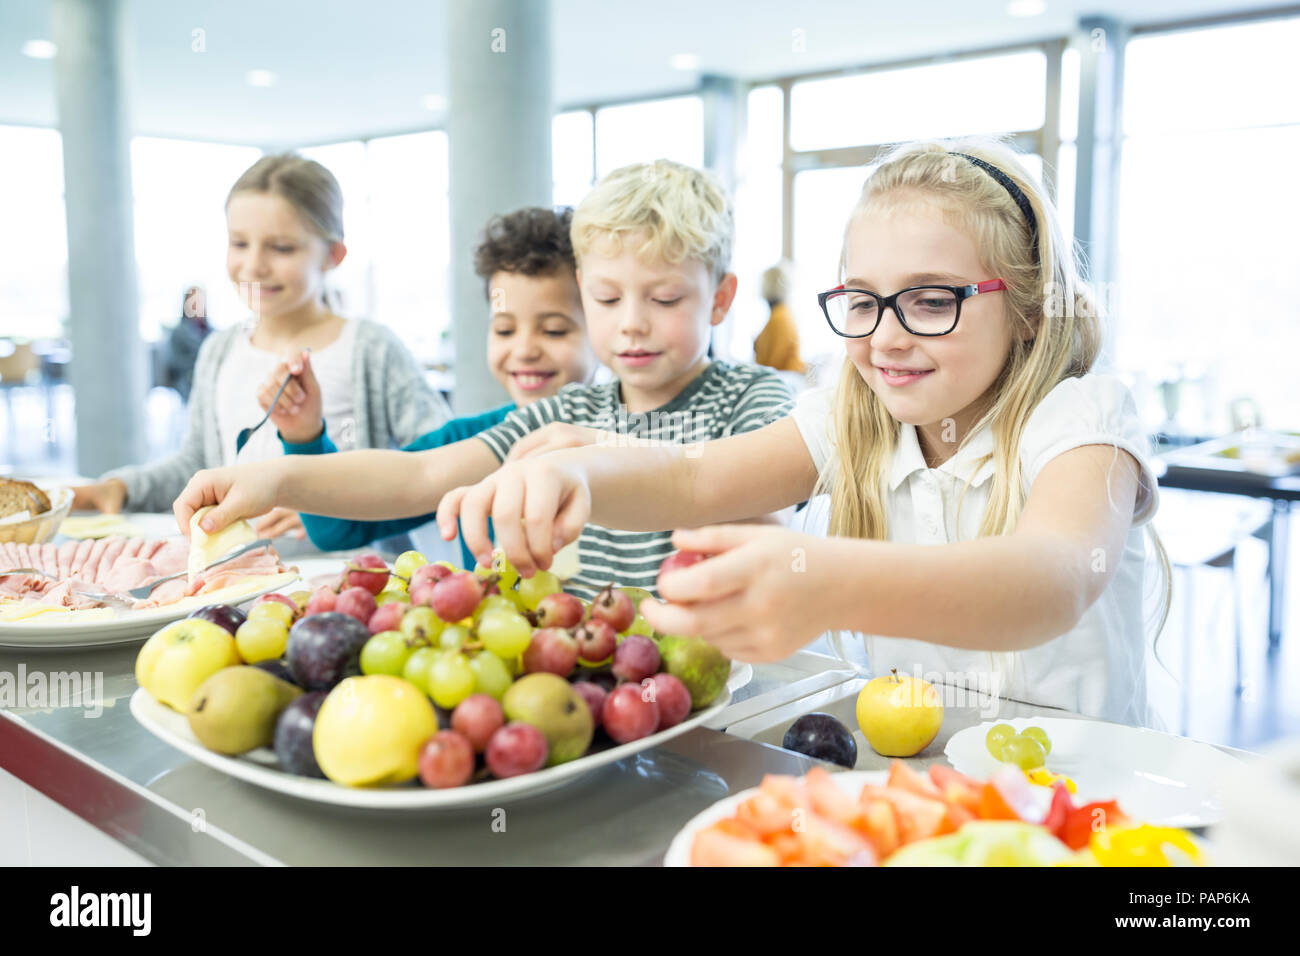 Pupils at counter in school canteen - Stock Image